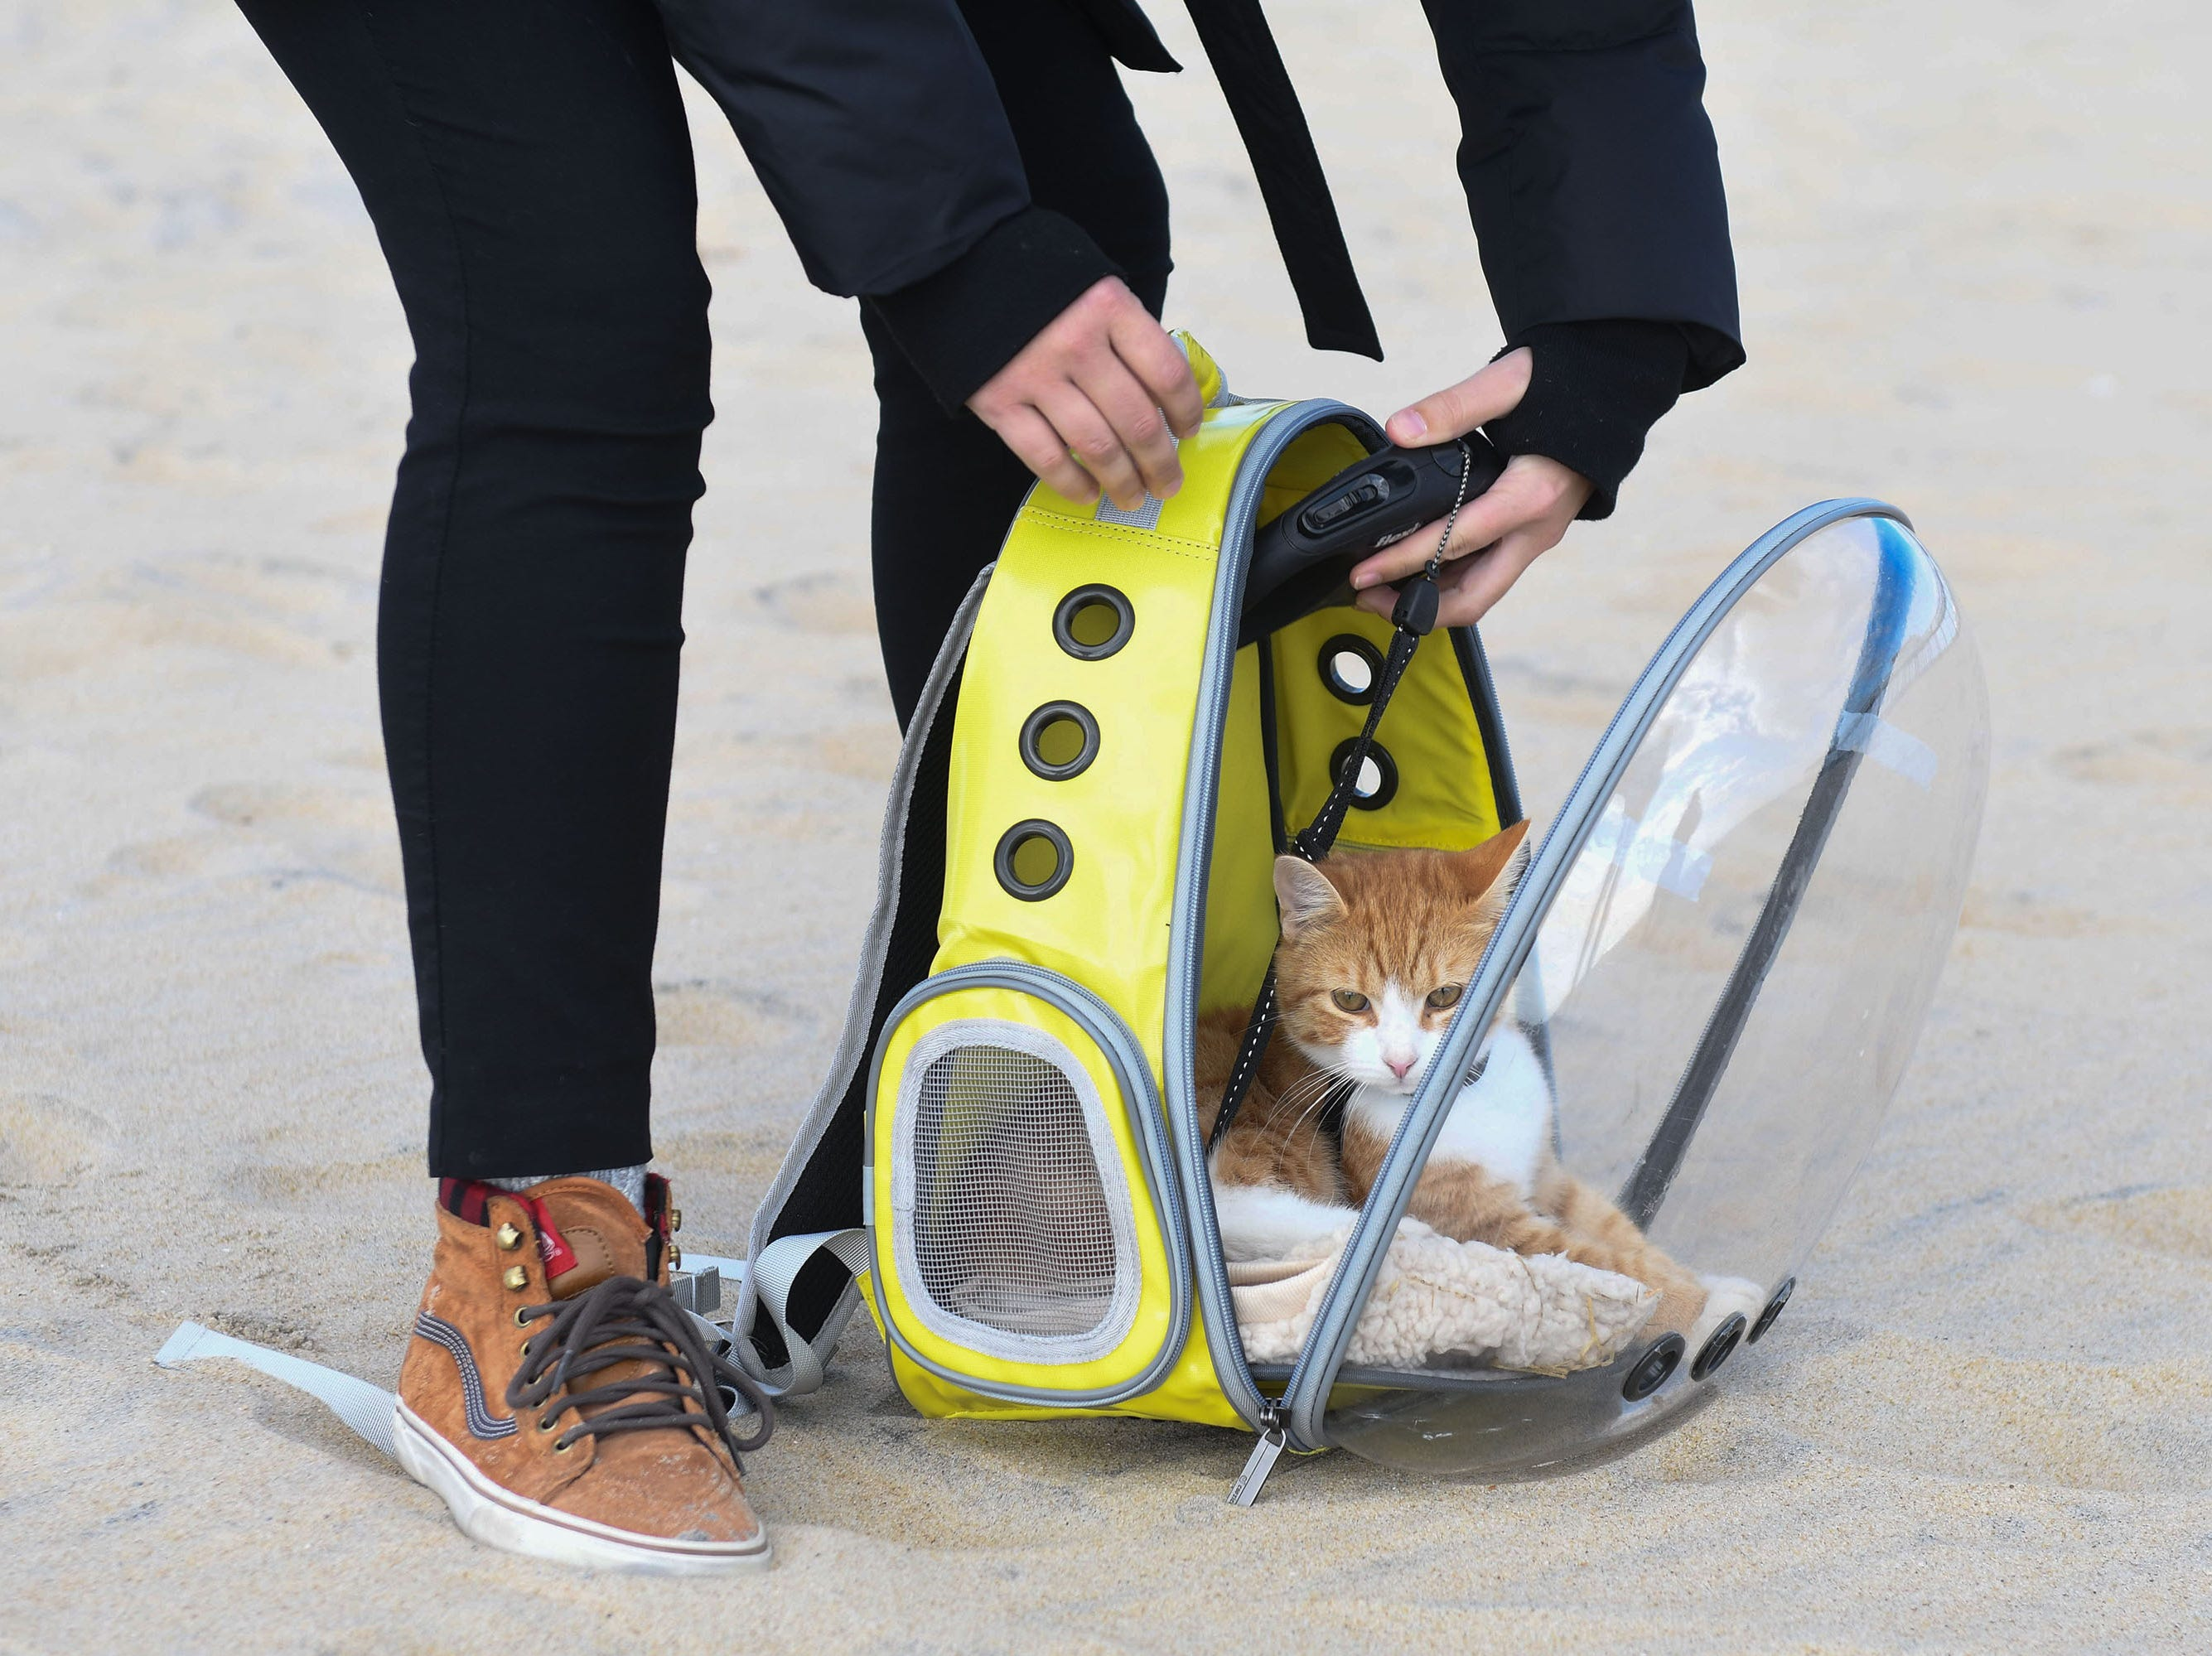 Pip the Beach Cat rides in his cat bubble to the beach to play.